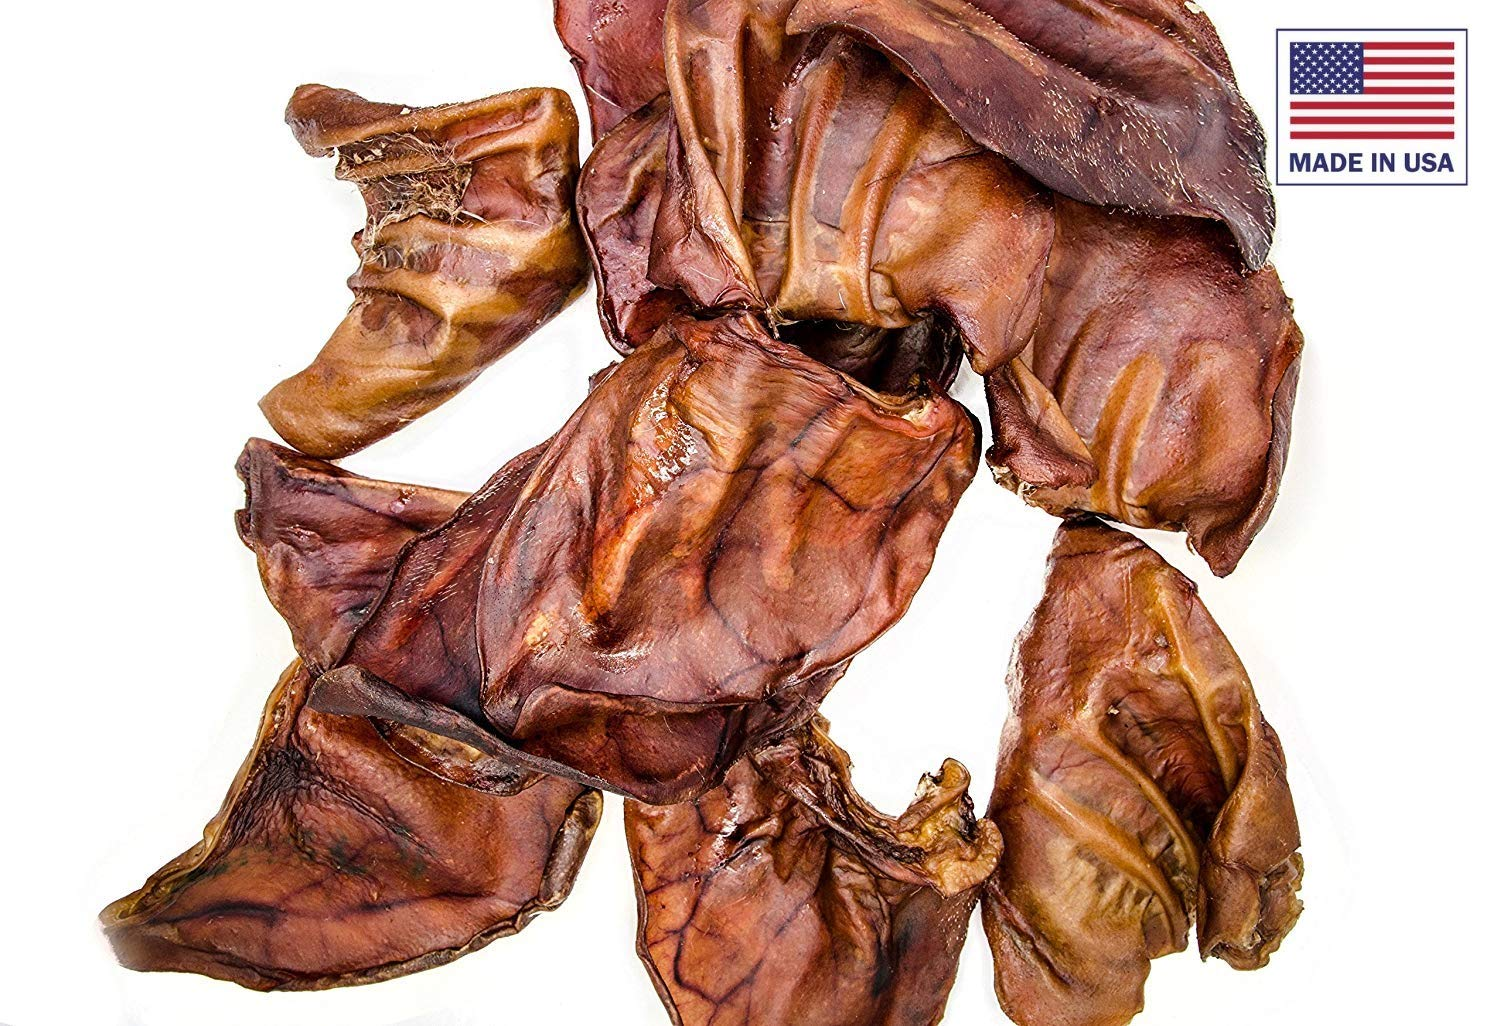 Unified Pet All Natural Premium Thick Cut Pig Ears Treats for Dogs - American Made - Maple Smoked Pork Chew Healthy for Clean Teeth (100 Count)